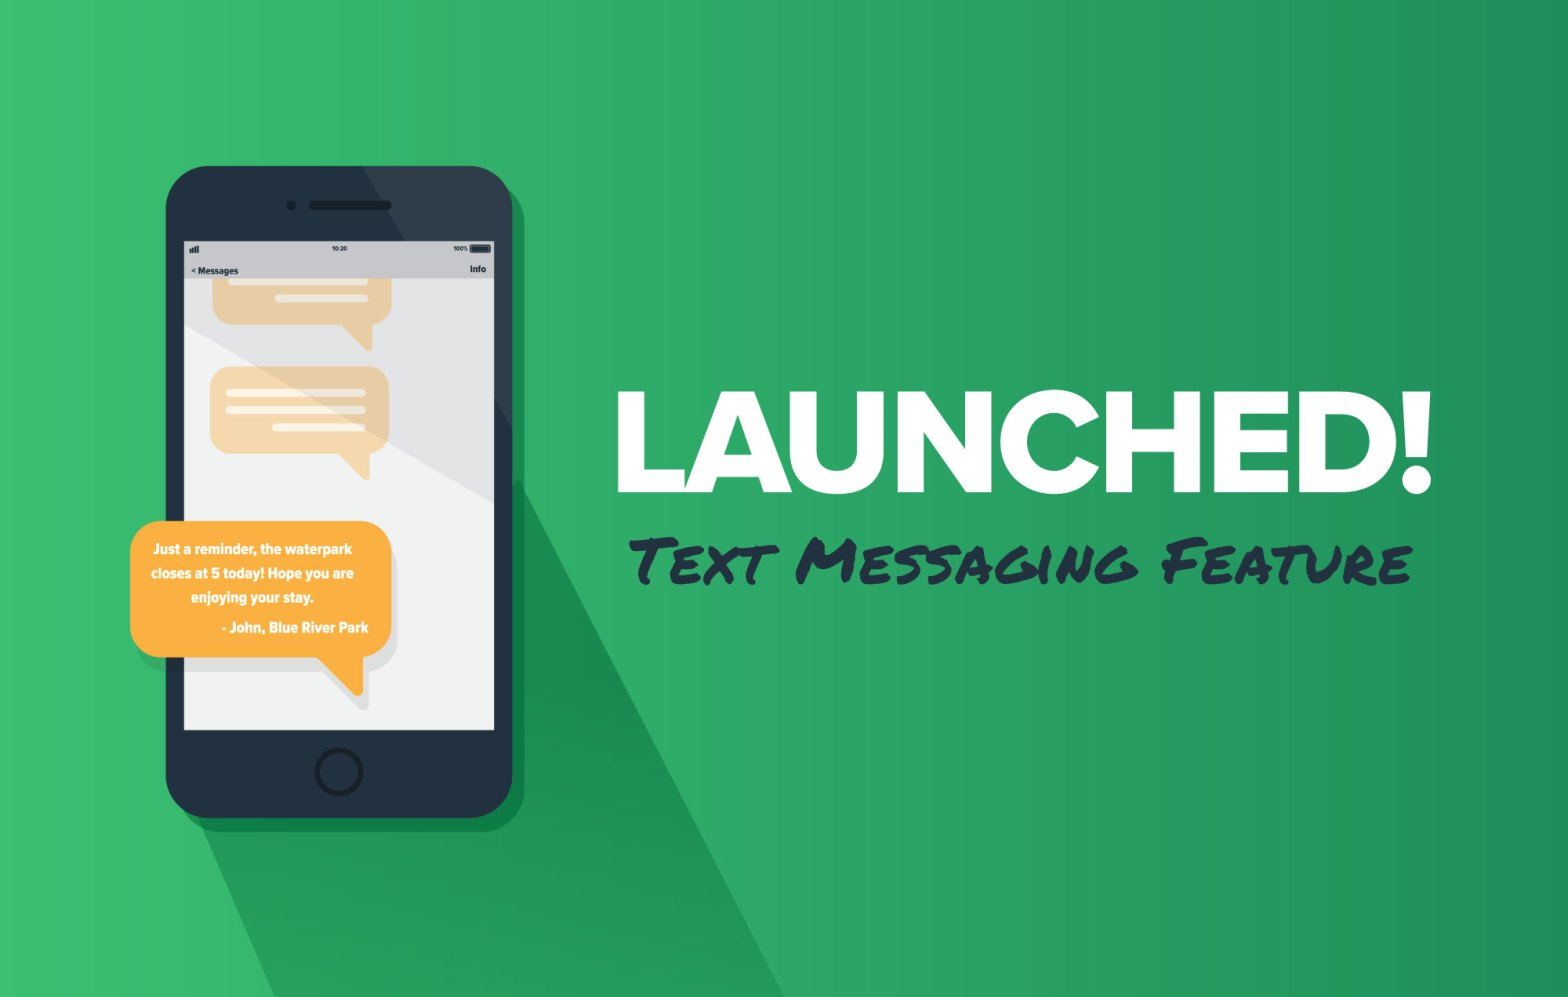 iphone mockup with text messaging feature on green background